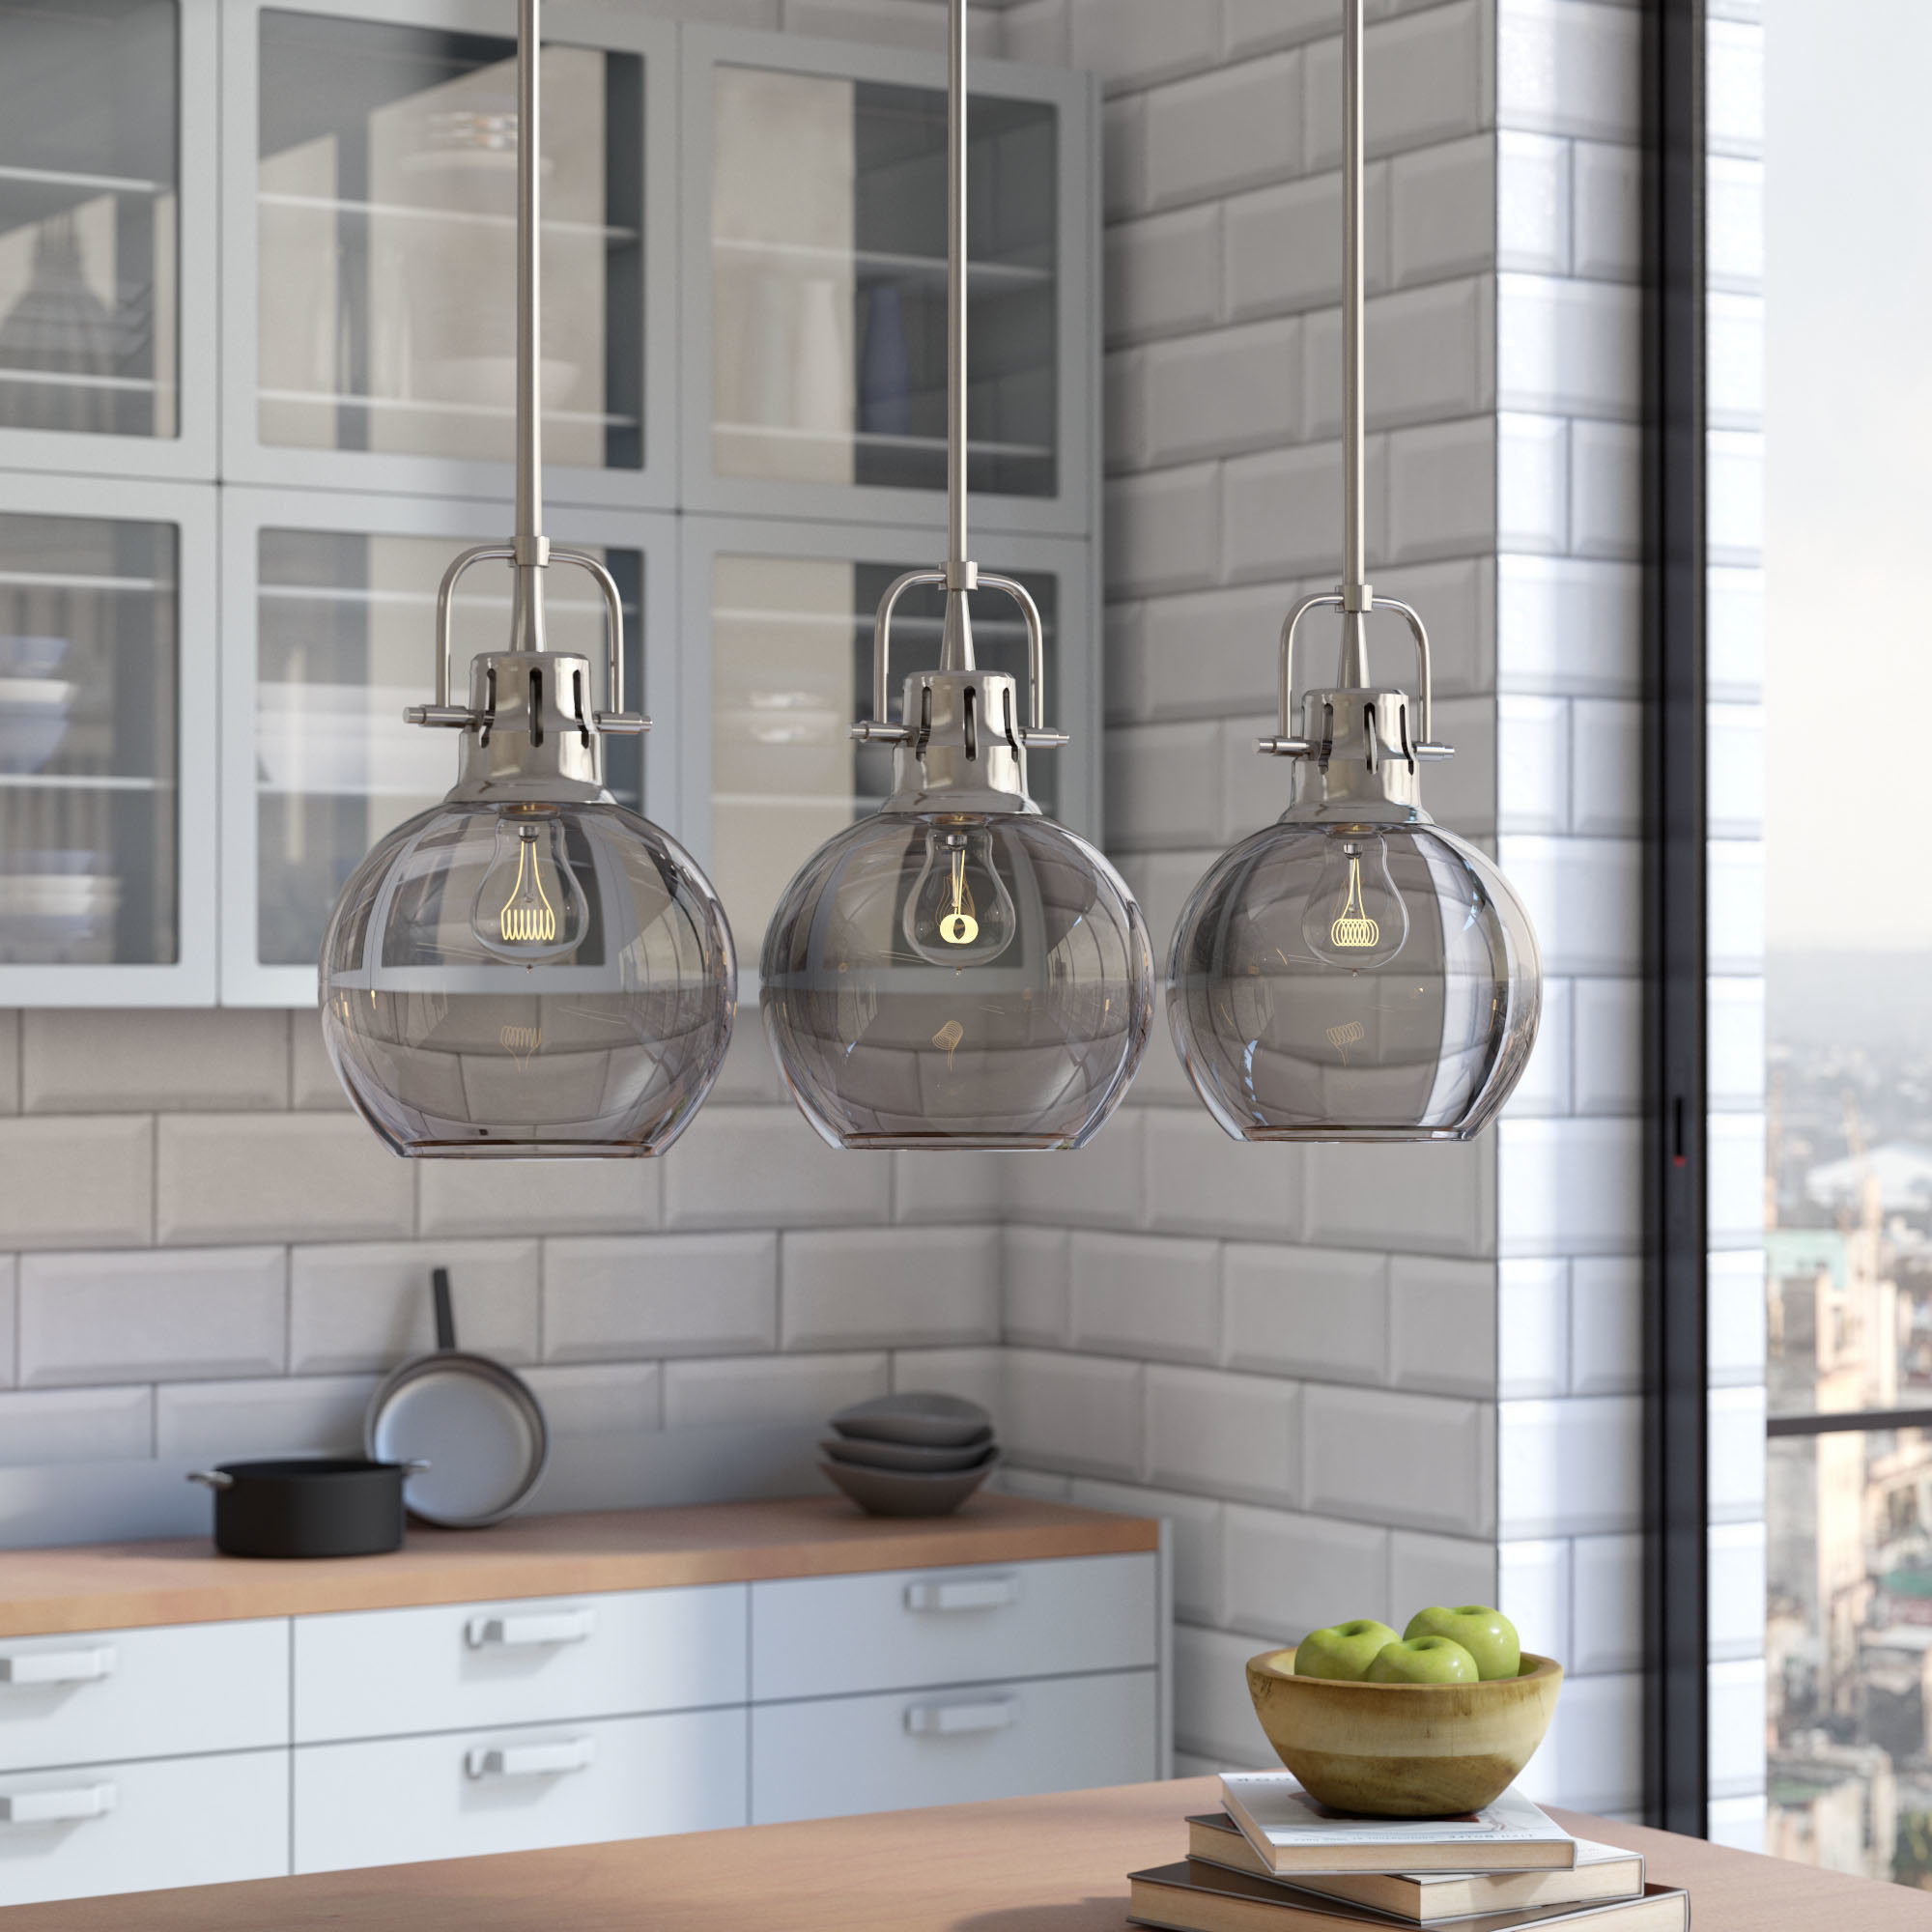 Fredela 3 Light Kitchen Island Pendants Inside Famous 3 Light Kitchen Island Pendant Lighting You'll Love In  (View 8 of 20)